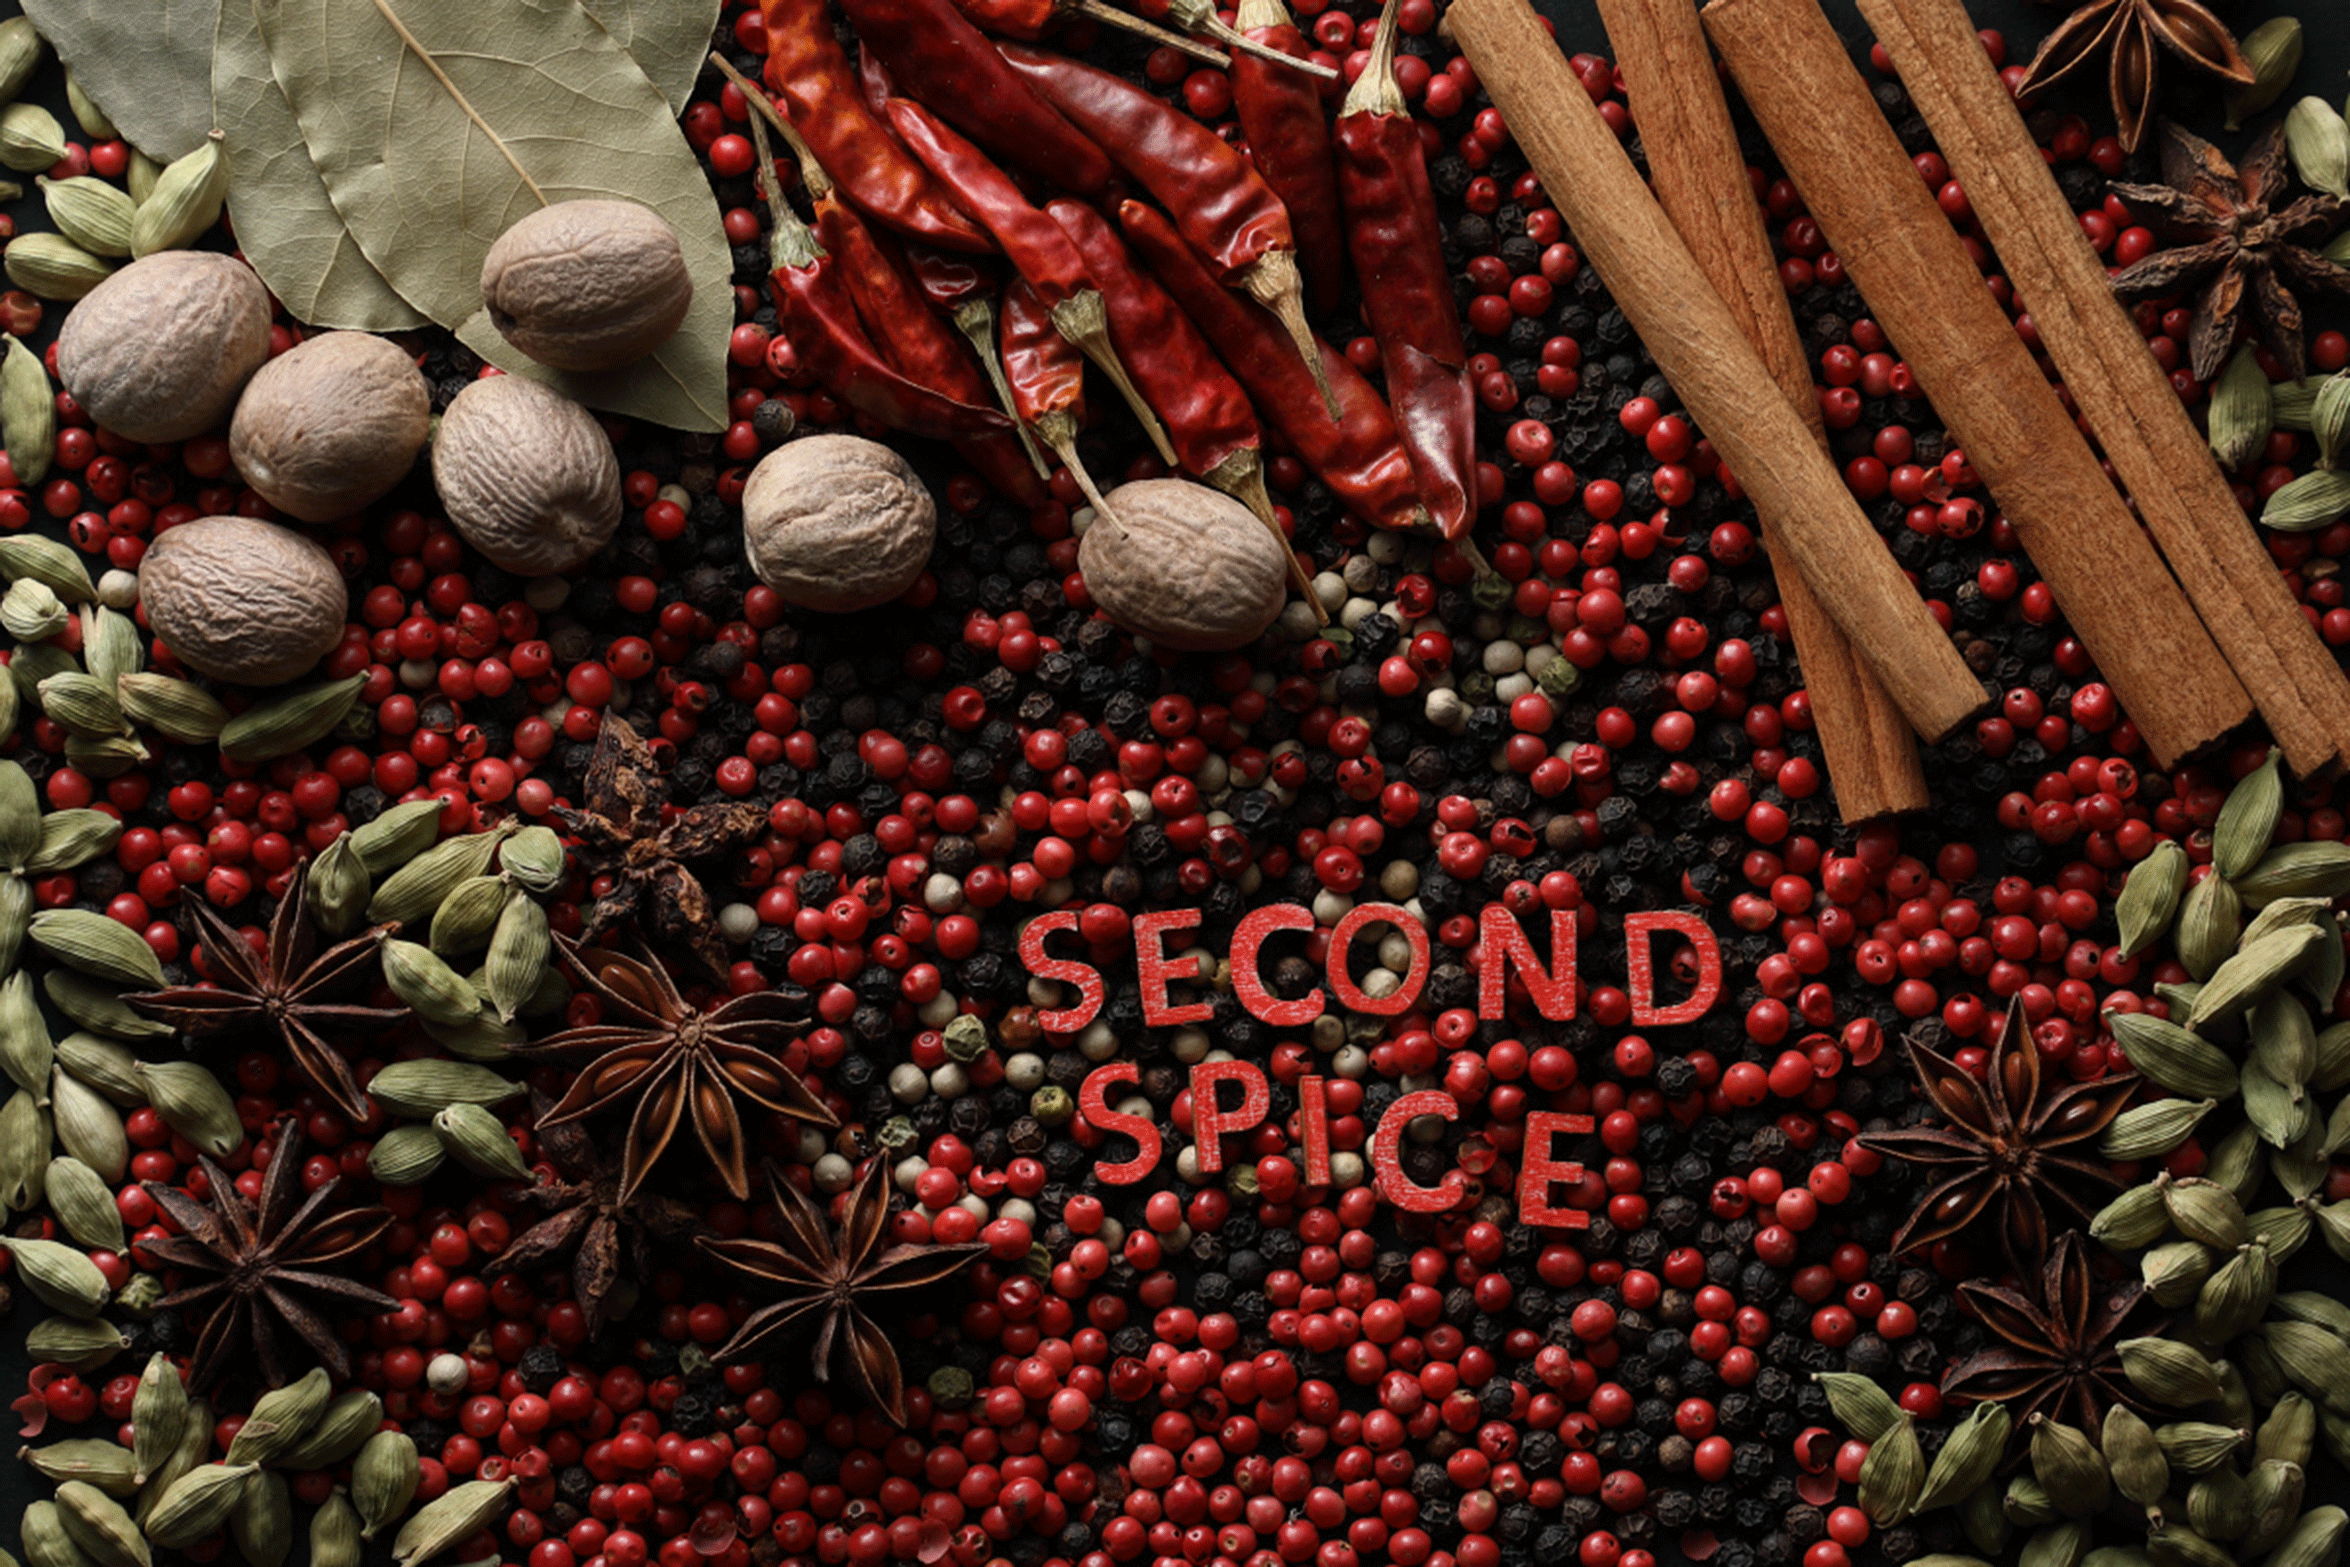 second spice